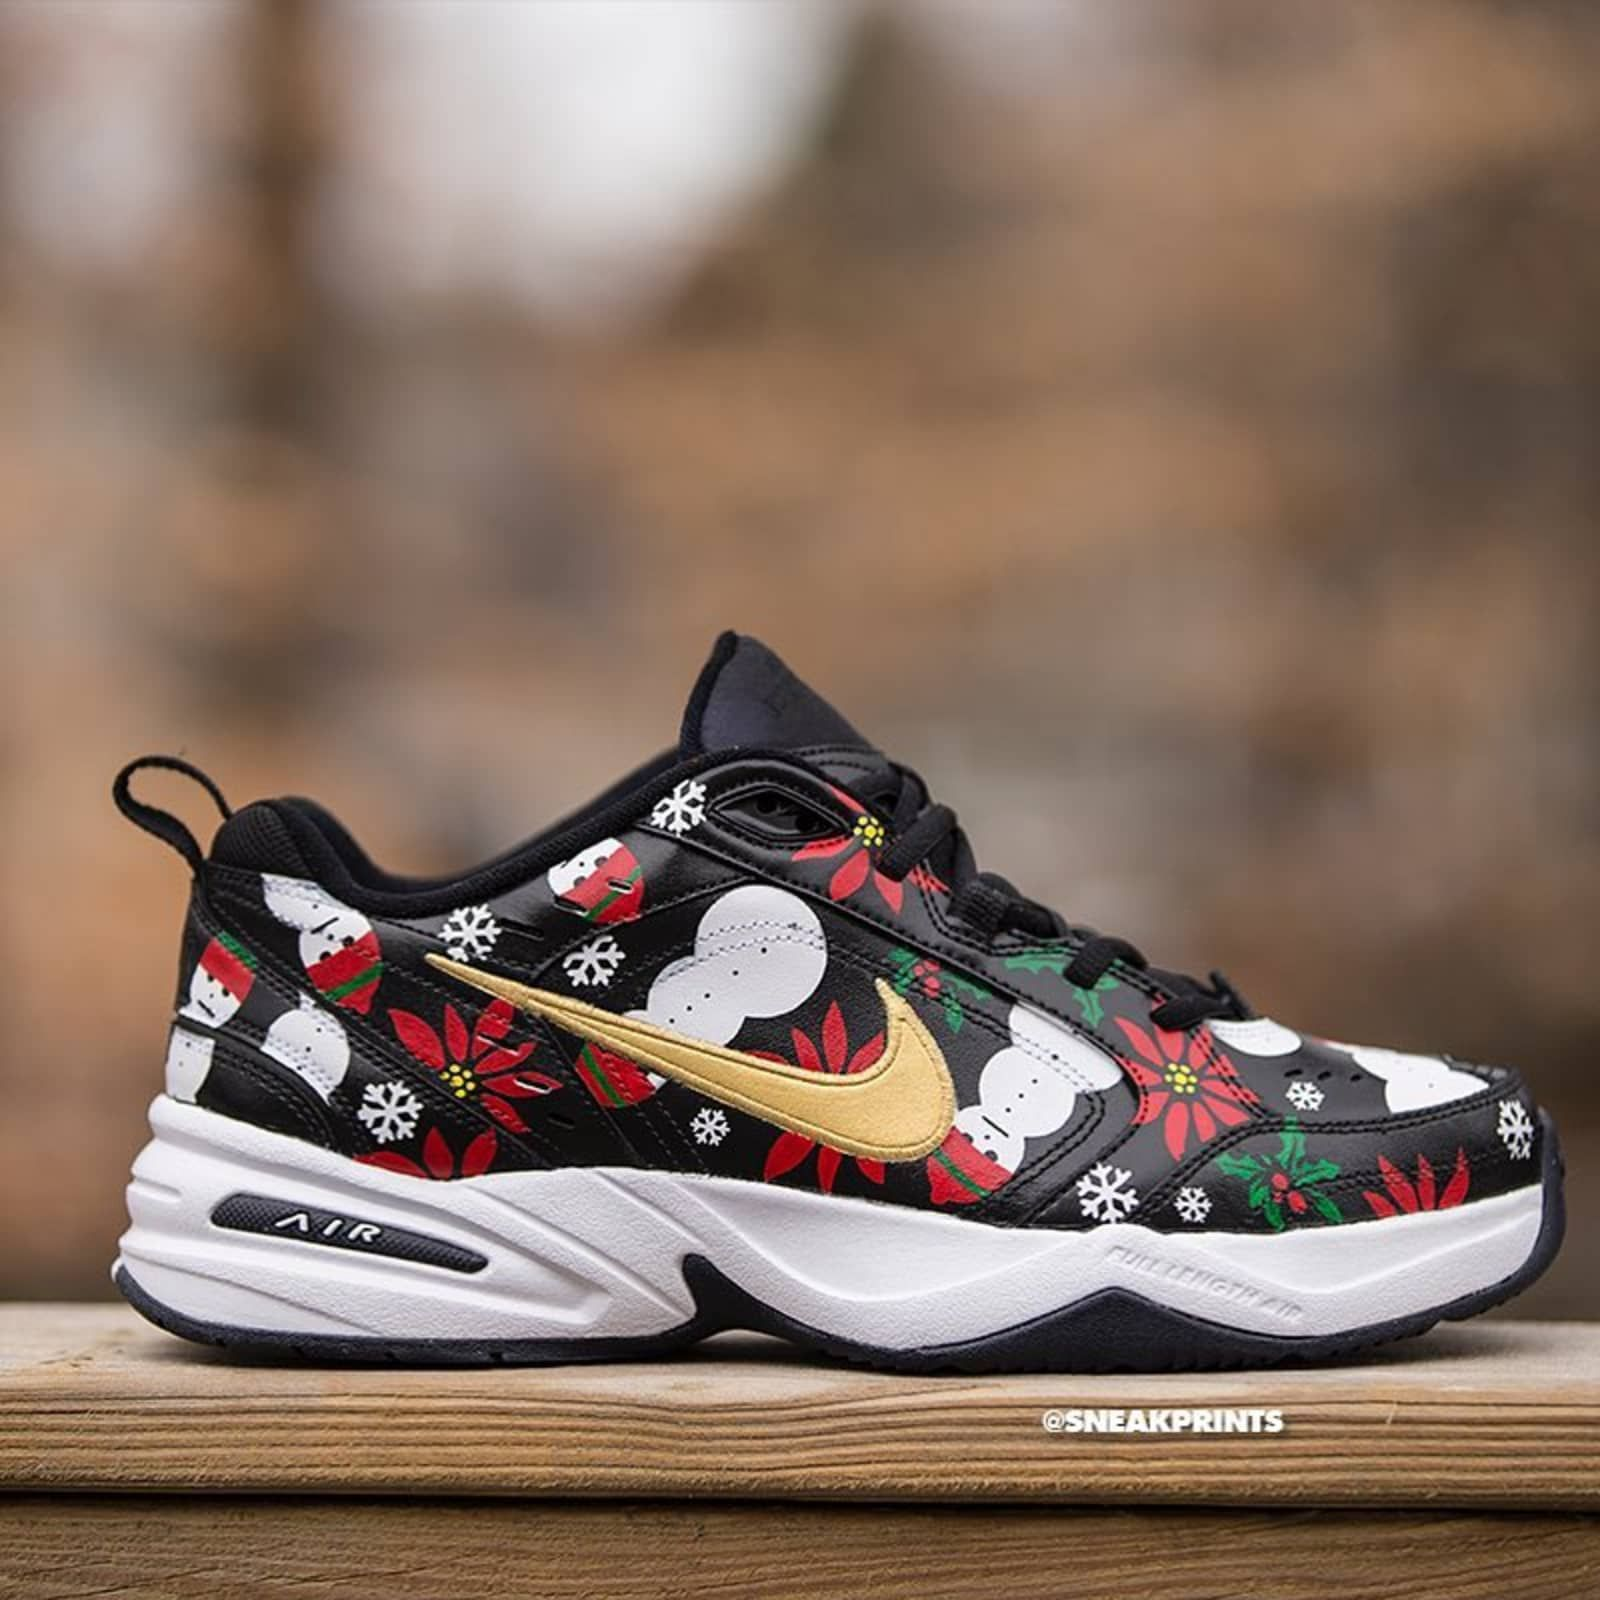 169b70c5d2 Nike Air Monarch Ugly Sweater Custom - Nike Monarch Customs | Sole Collector